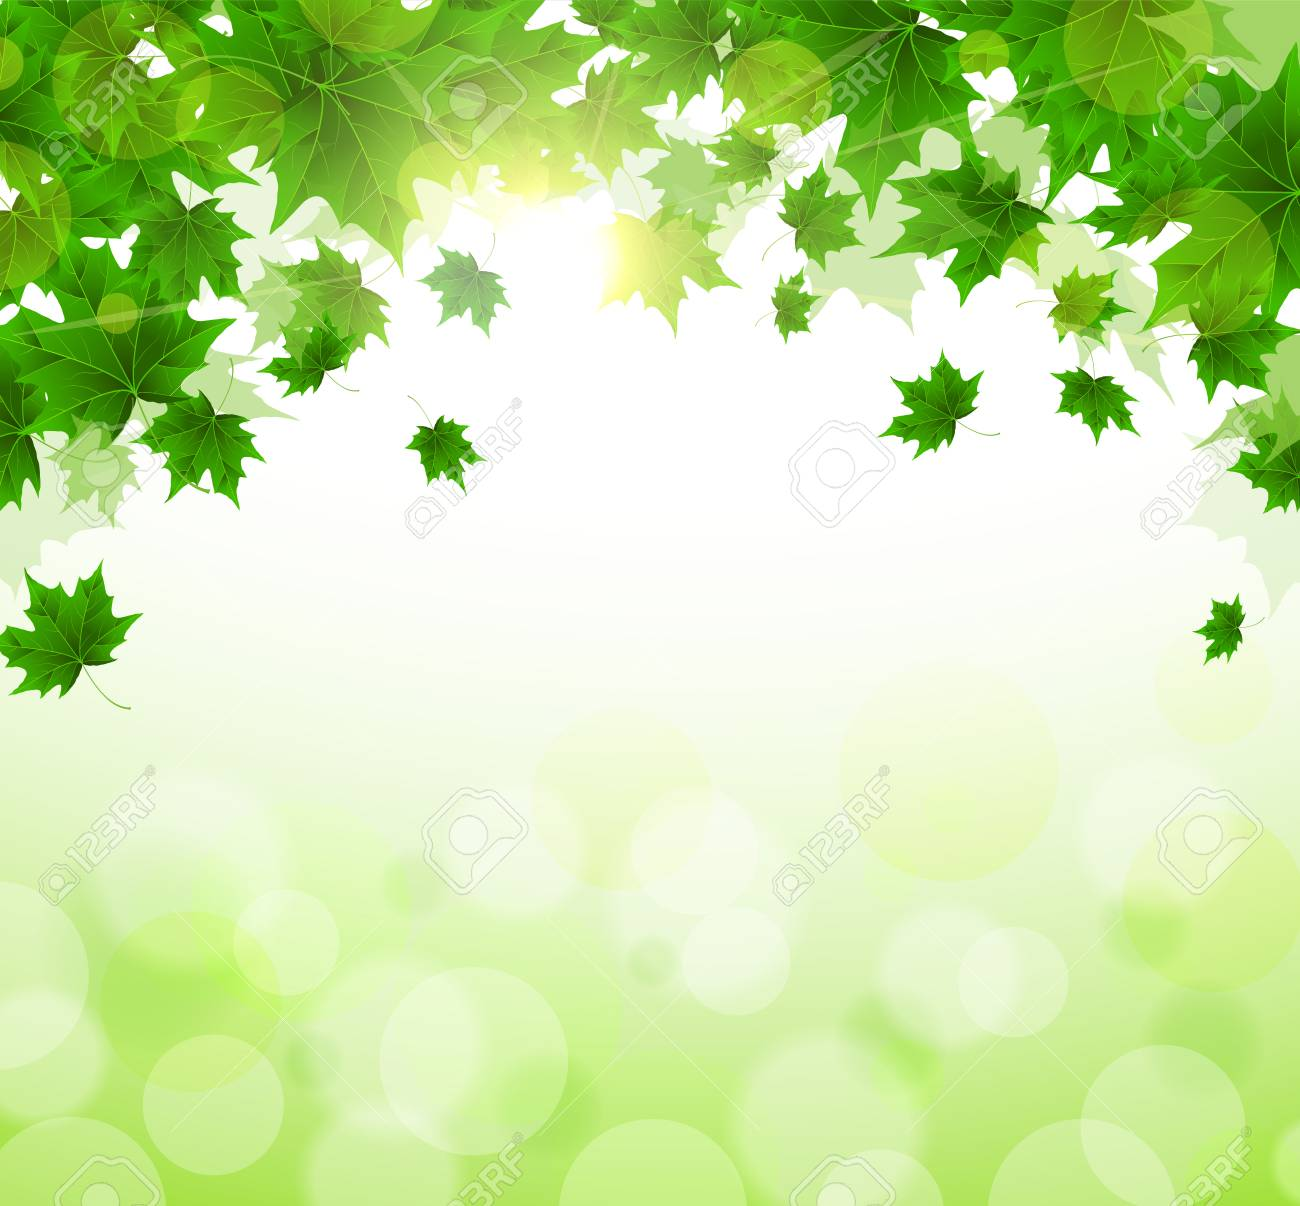 Frame of fresh green leaves of maple. Sunny spring or summer day. Awakening of nature. Cover or background for an article. Copy space. - 125421100